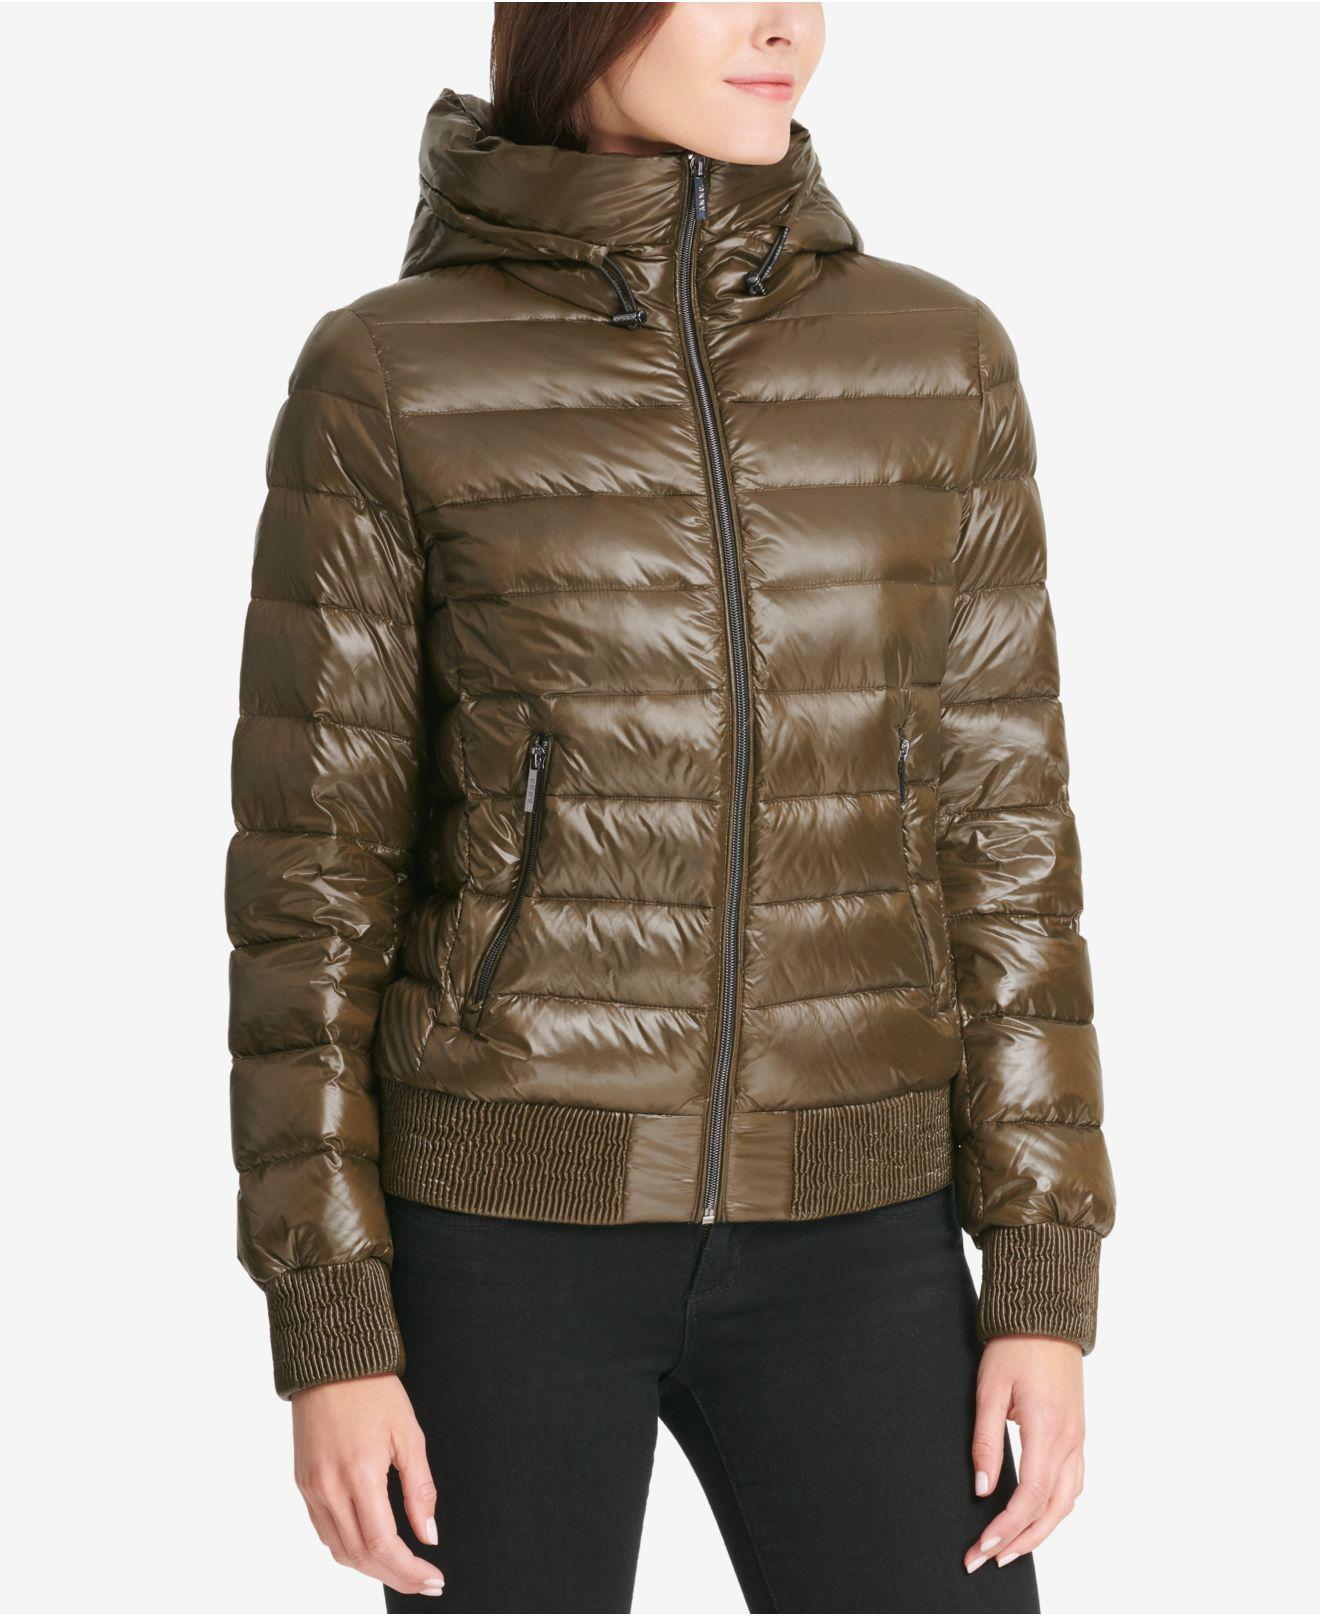 5497a5cd7 DKNY Multicolor Packable Hooded Bomber Puffer Coat